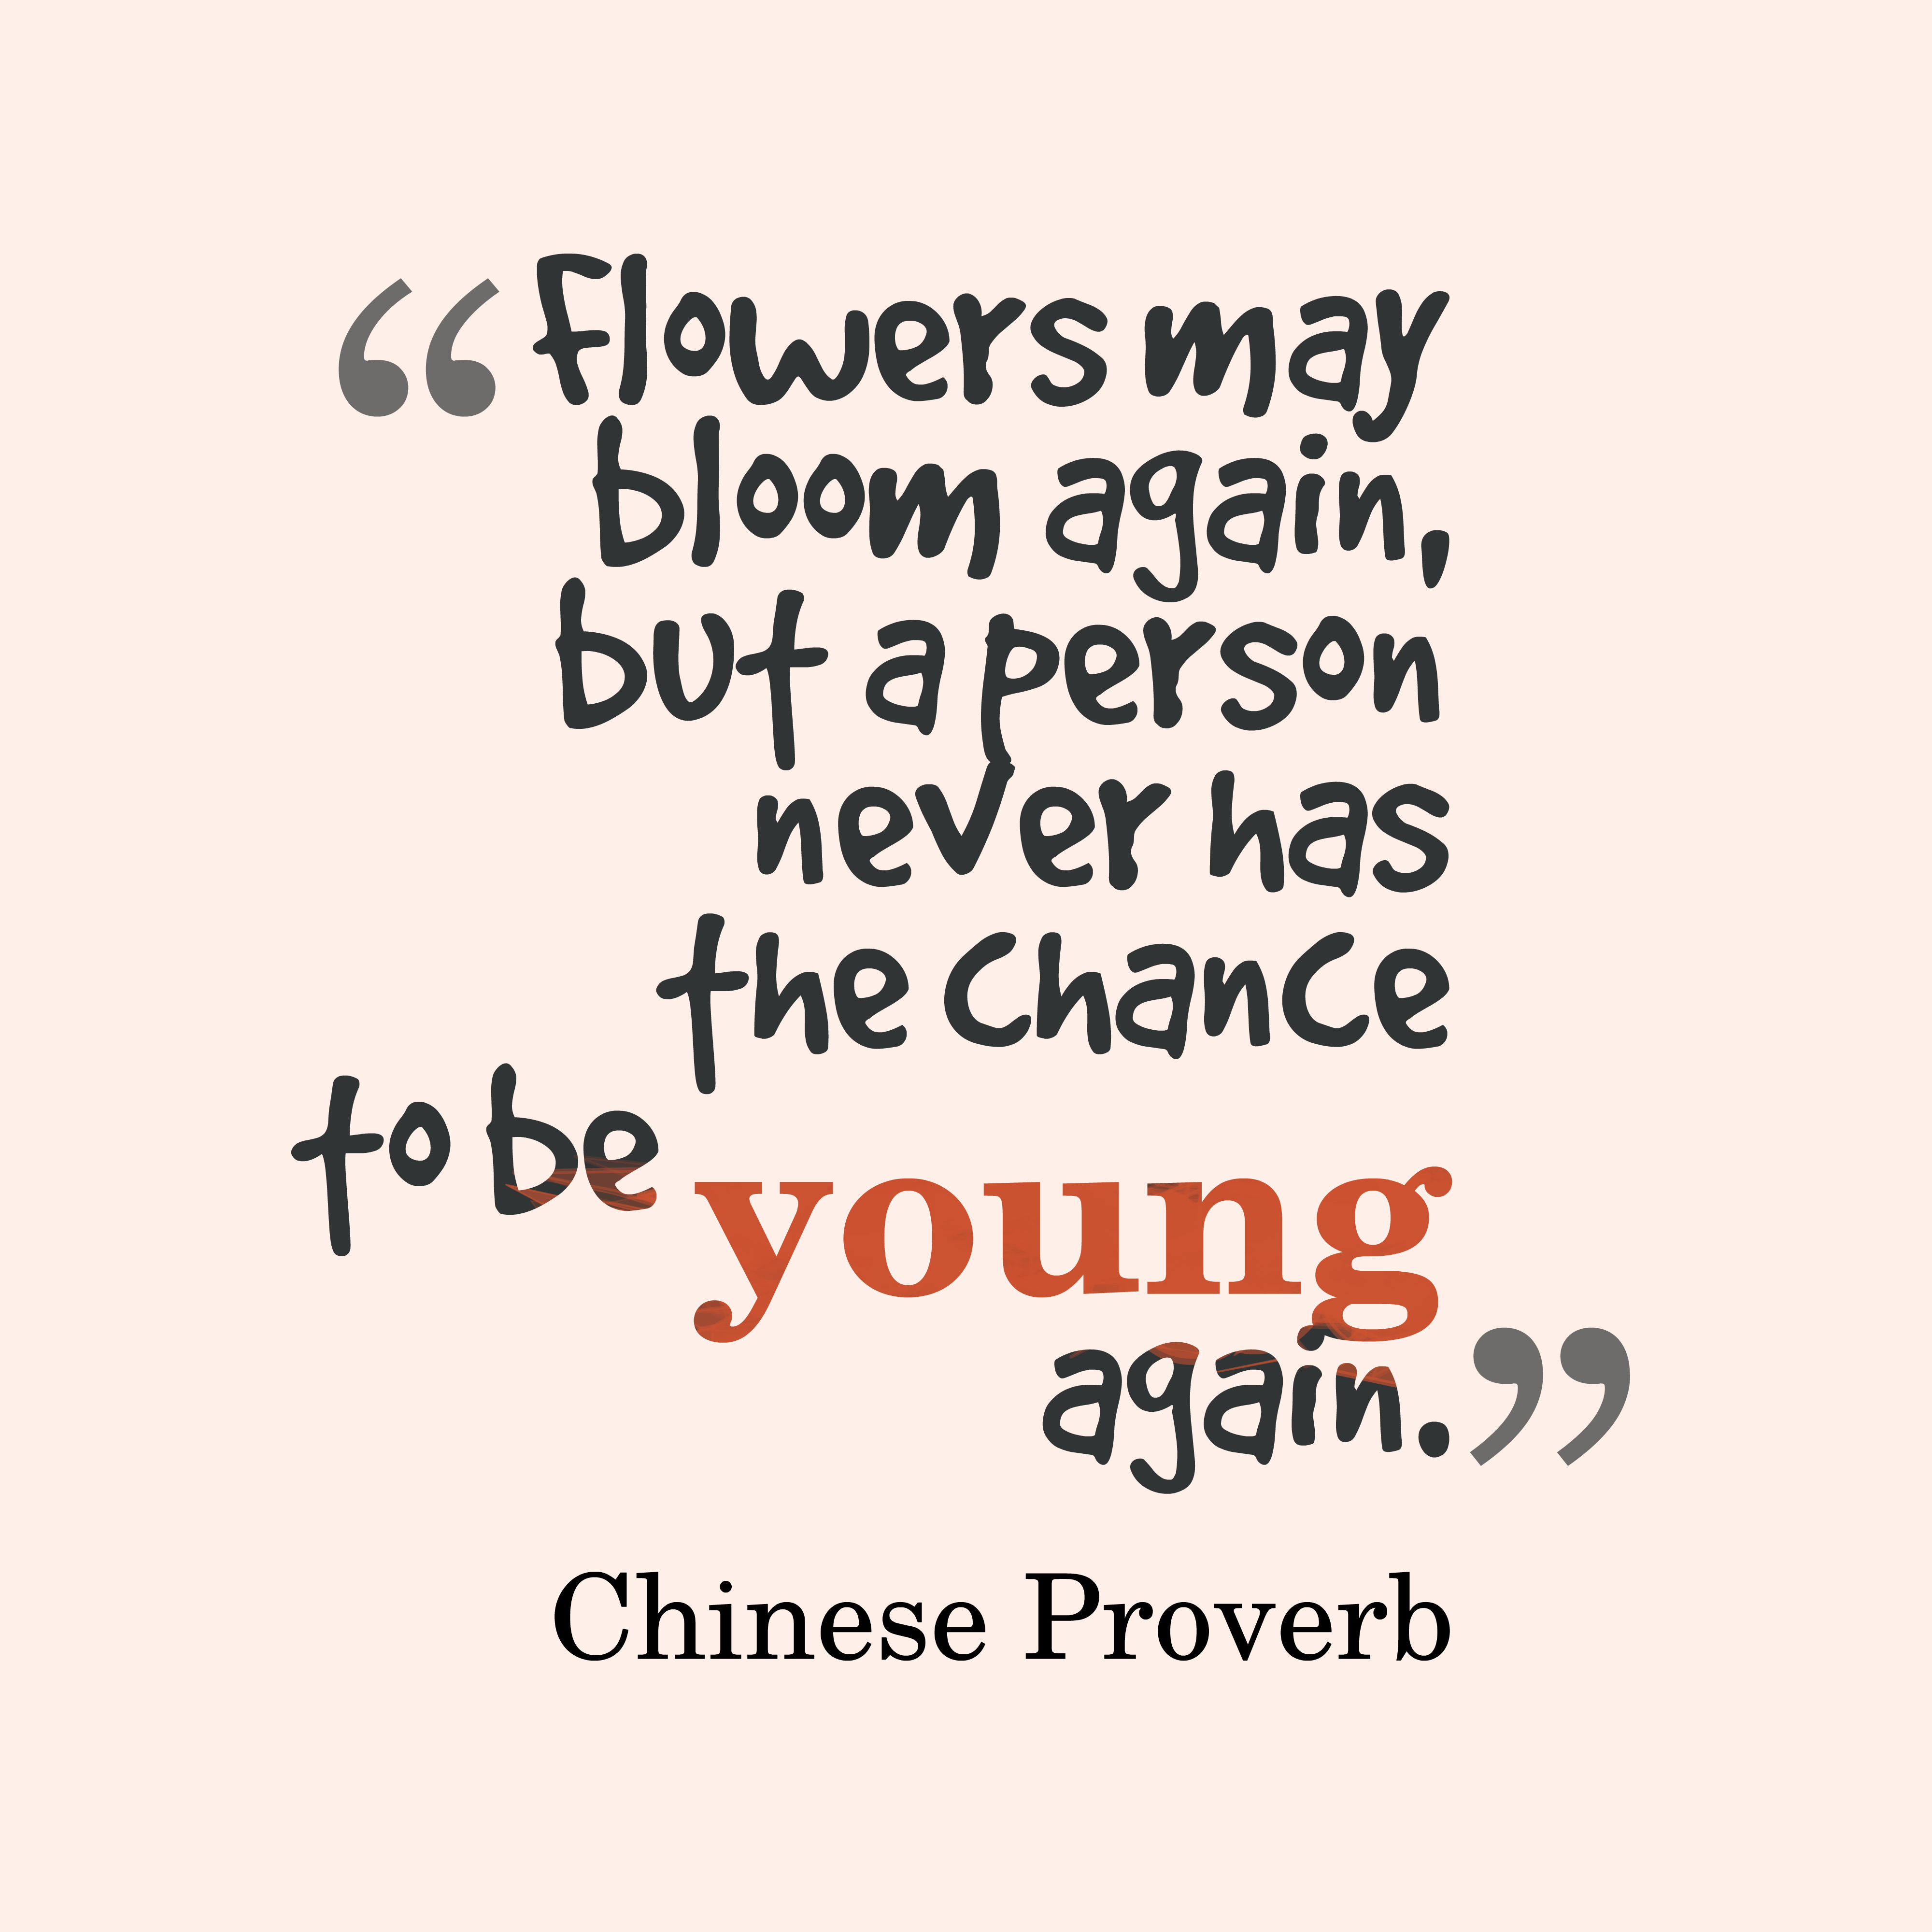 Chinese Quotes: Inspirational And Motivational Chinese Quotes, Proverbs